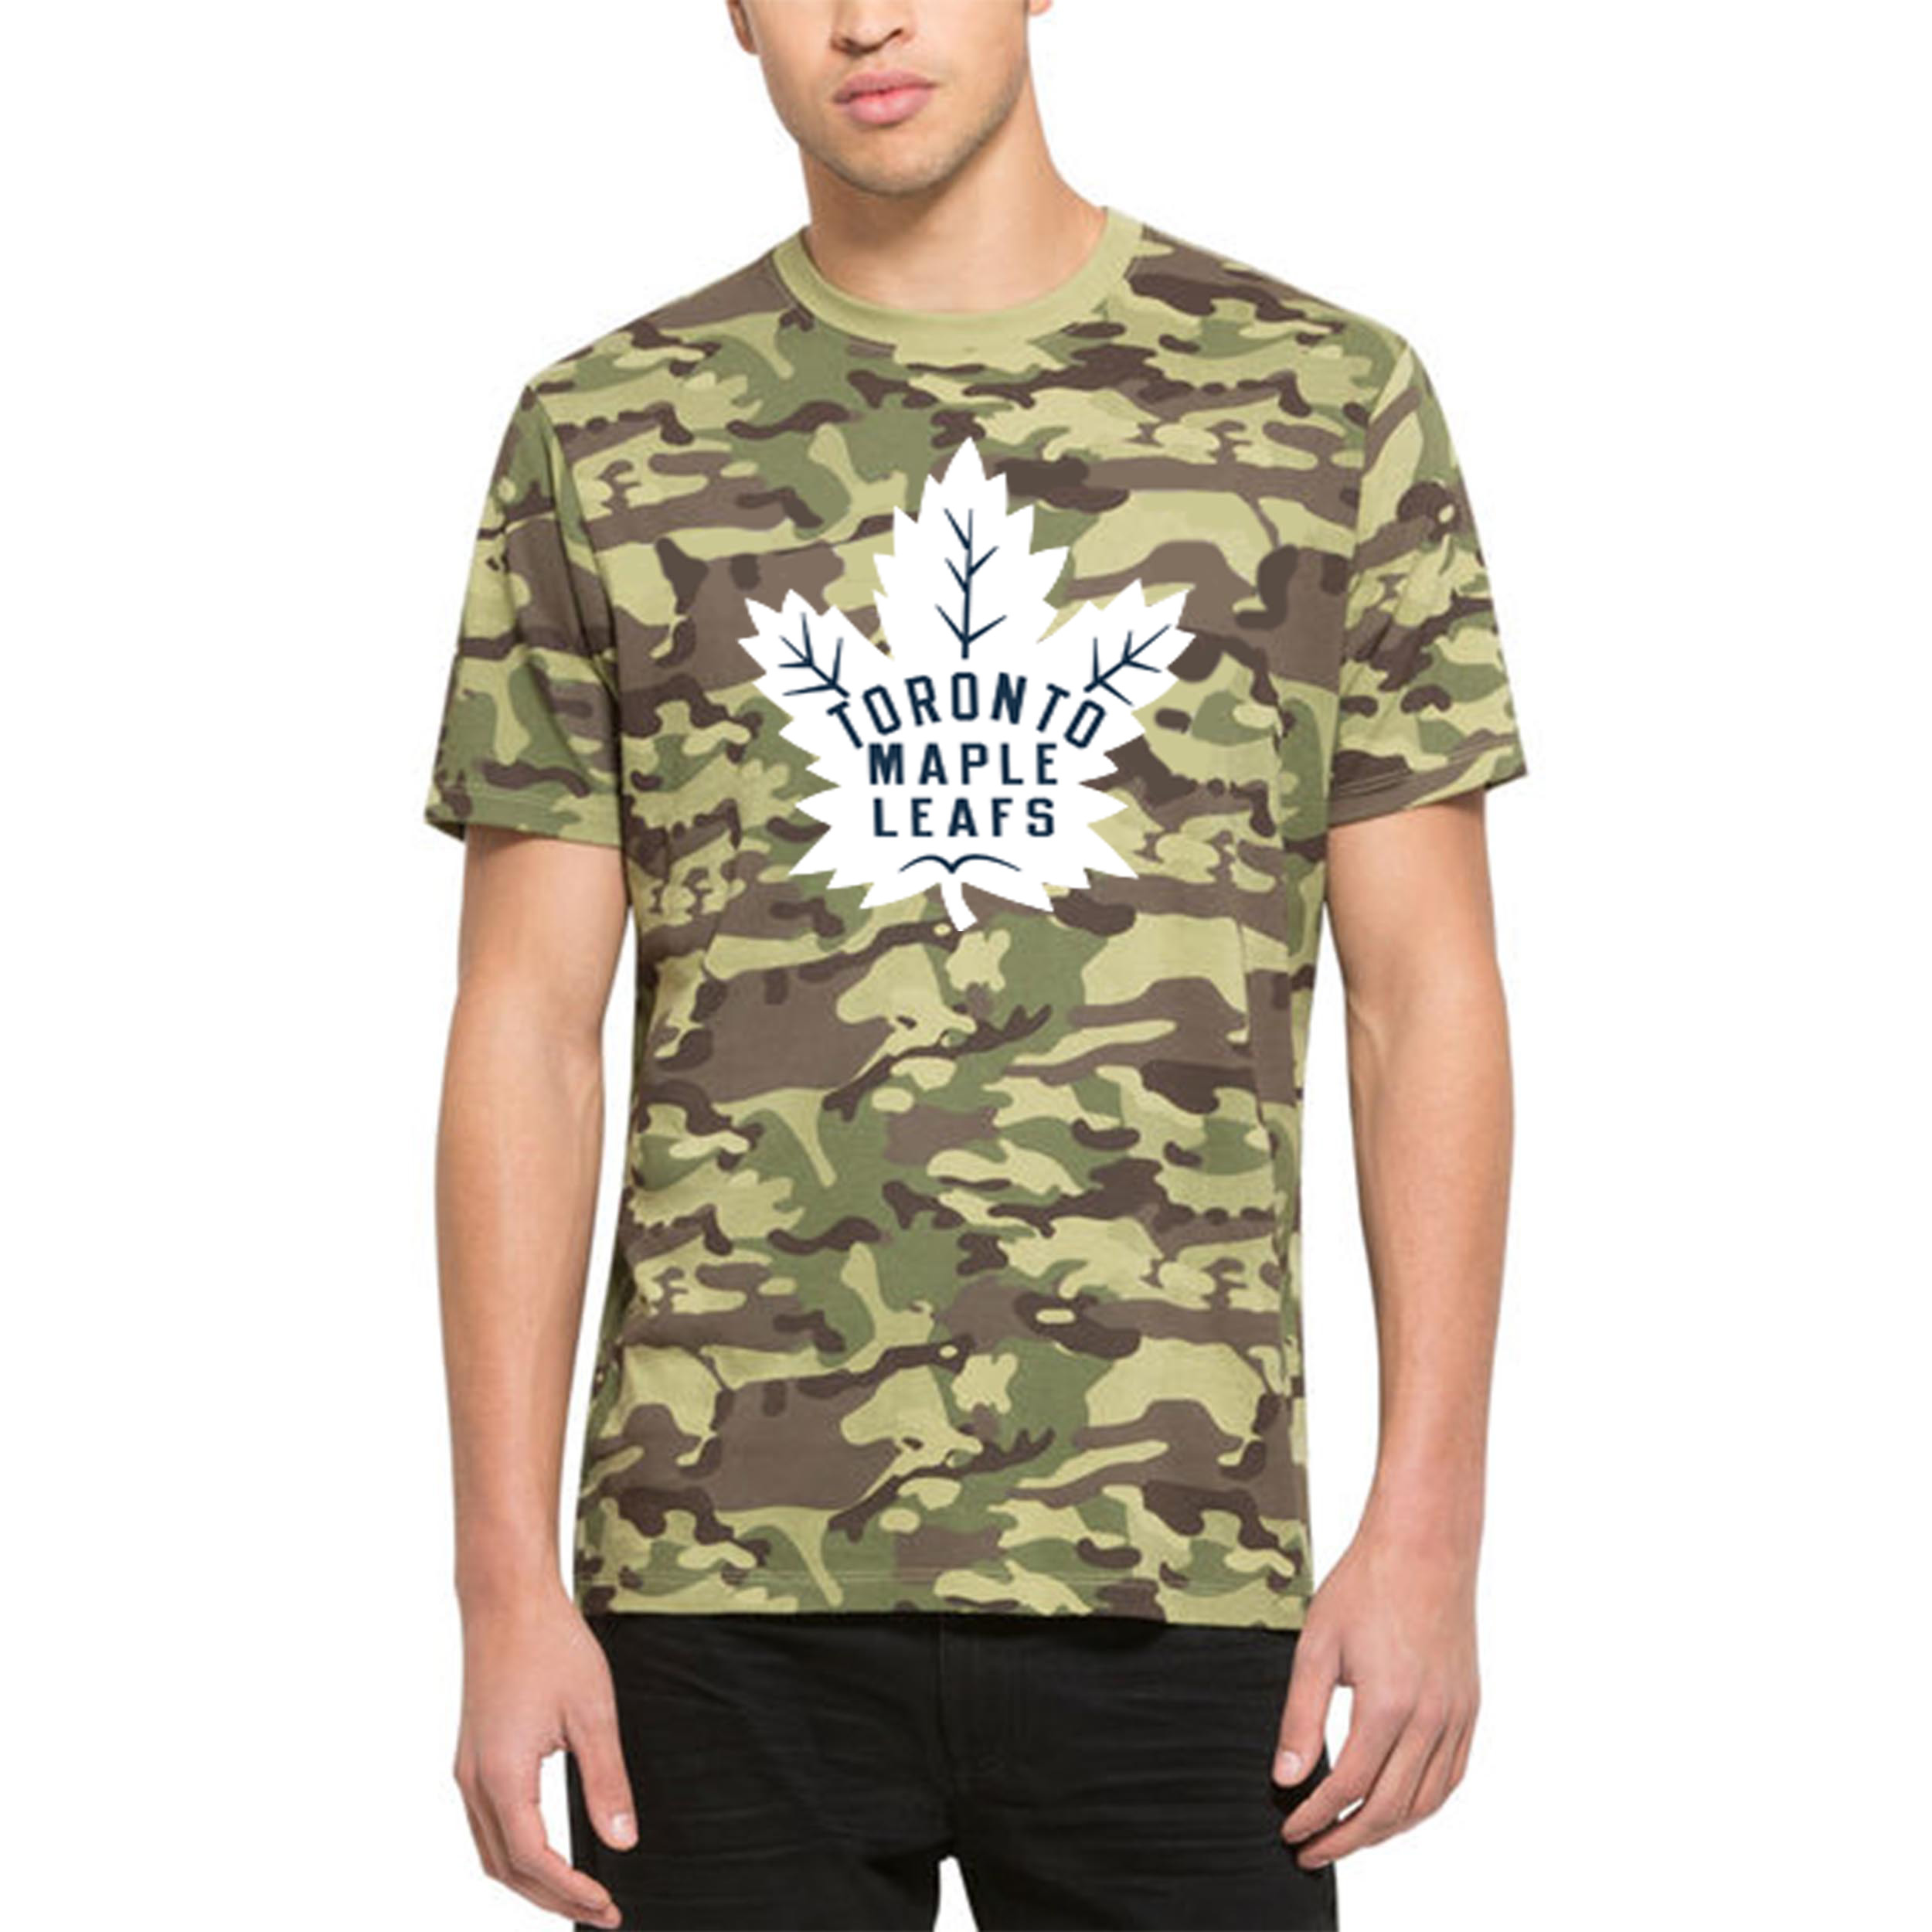 Toronto Maple Leafs '47 Alpha T-Shirt Camo